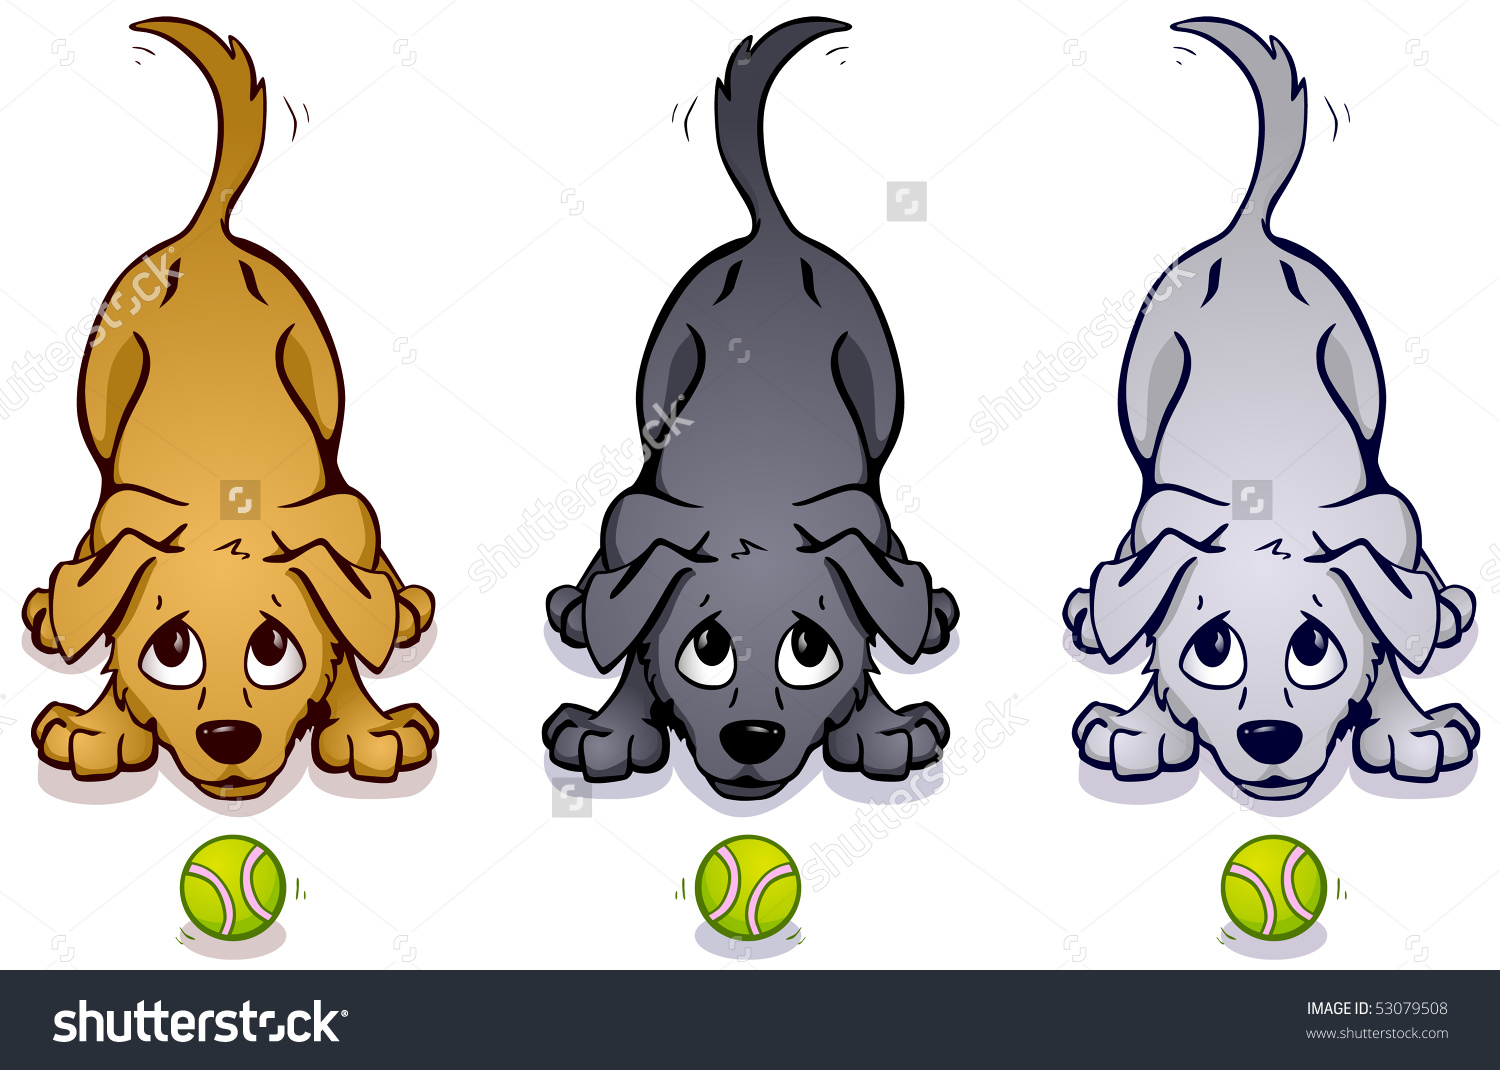 Clipart dog wagging tail clip transparent download Puppy dog tails clipart - ClipartFest clip transparent download